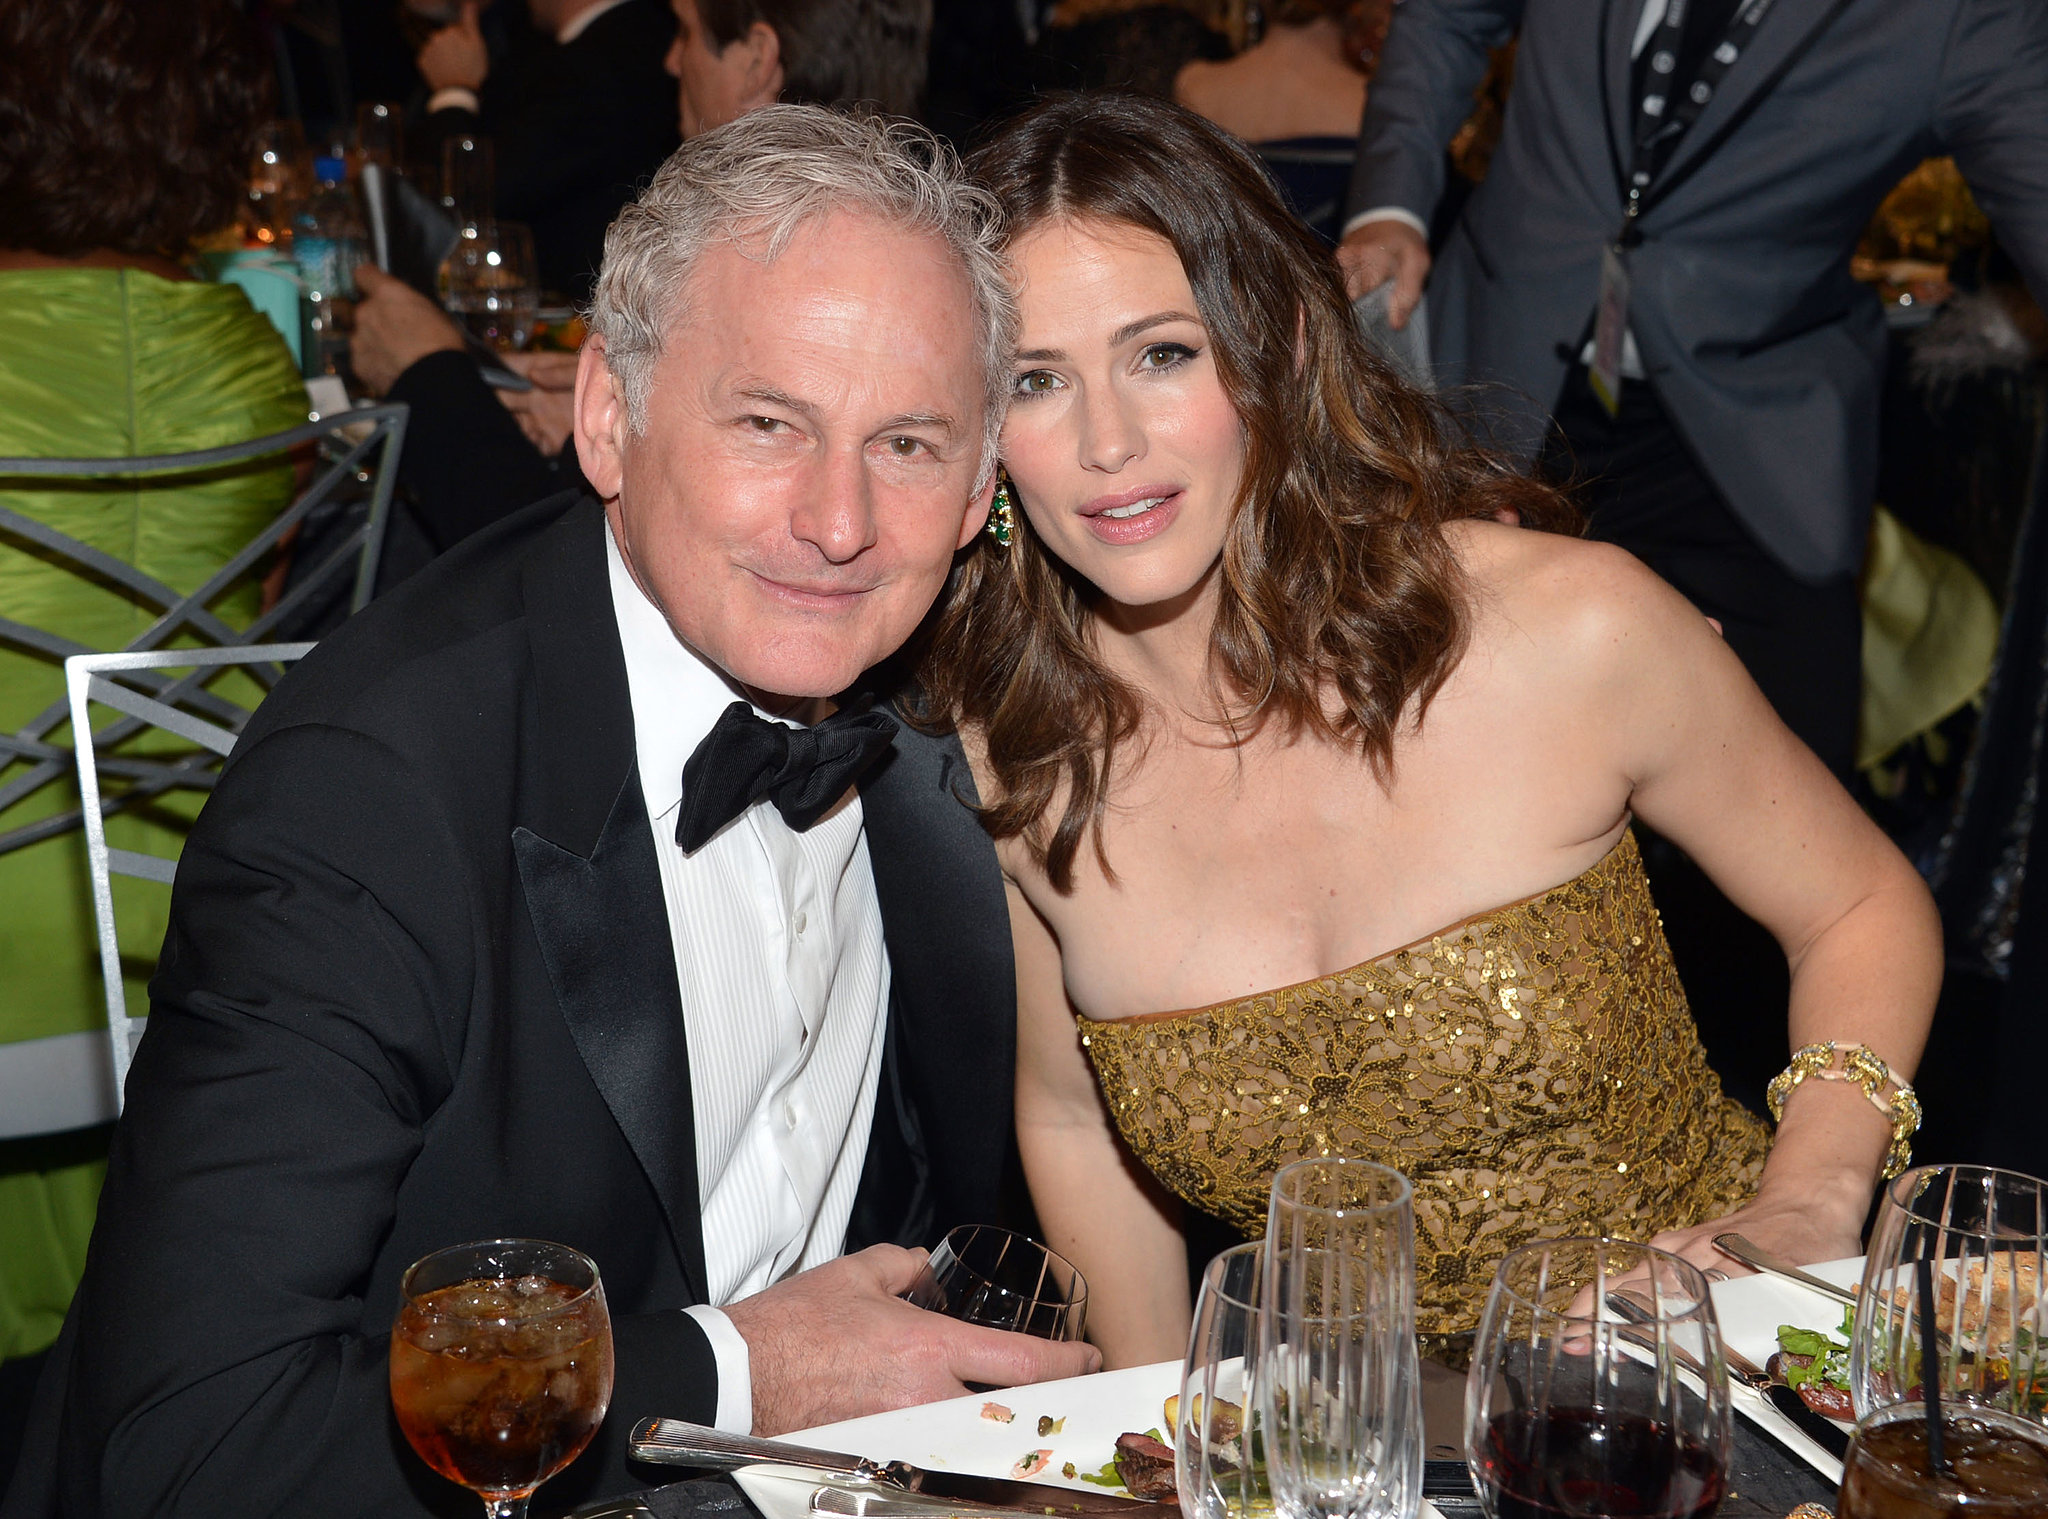 Victor Garber and Jennifer Garner have remained close since starring as father and daughter i